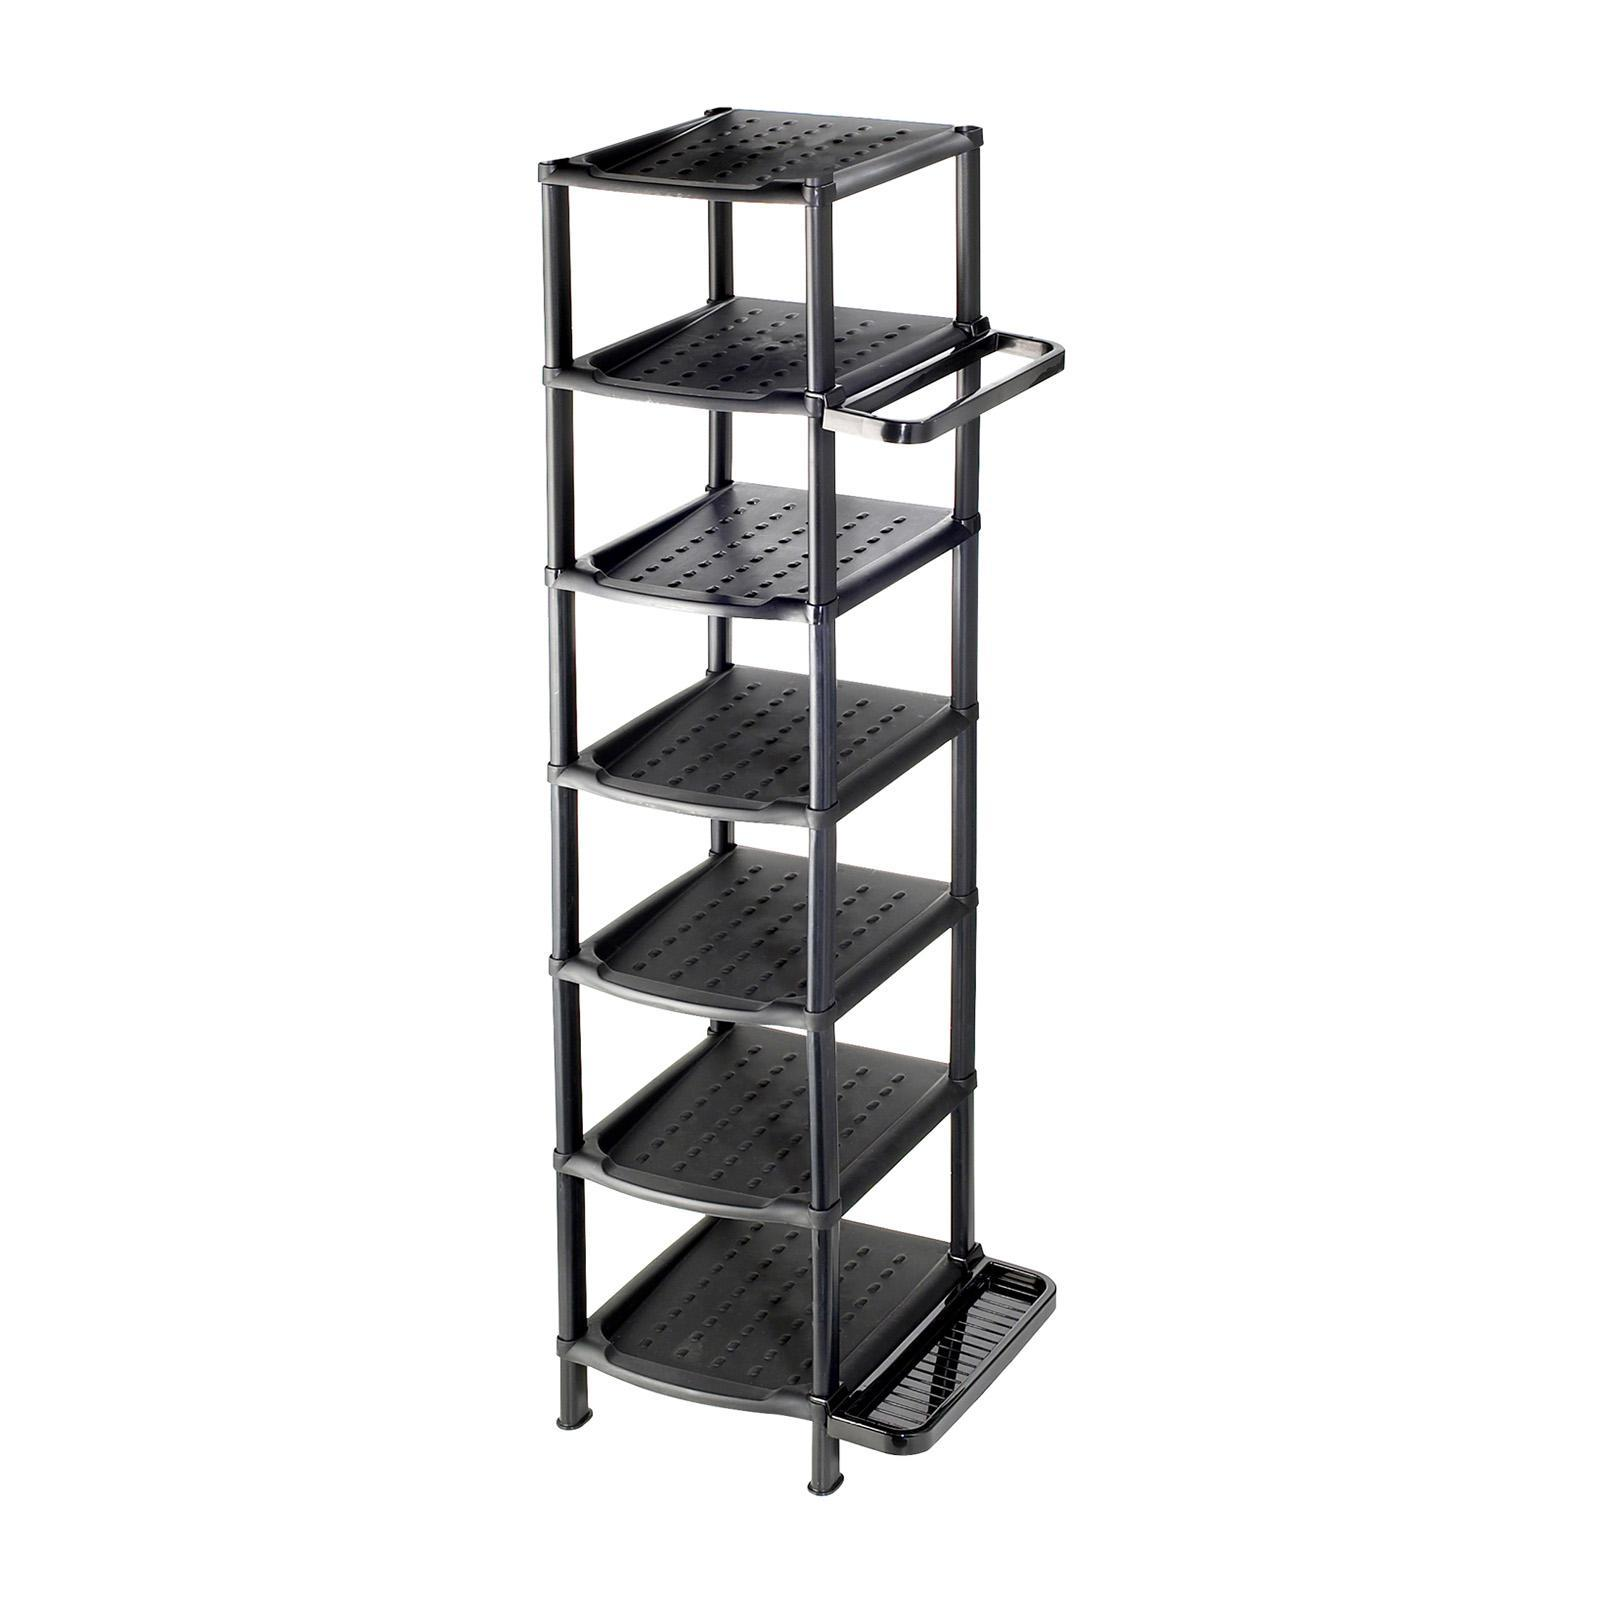 ALGO Multi Shoe Rack 7 Tier W/ Umbrella Holder